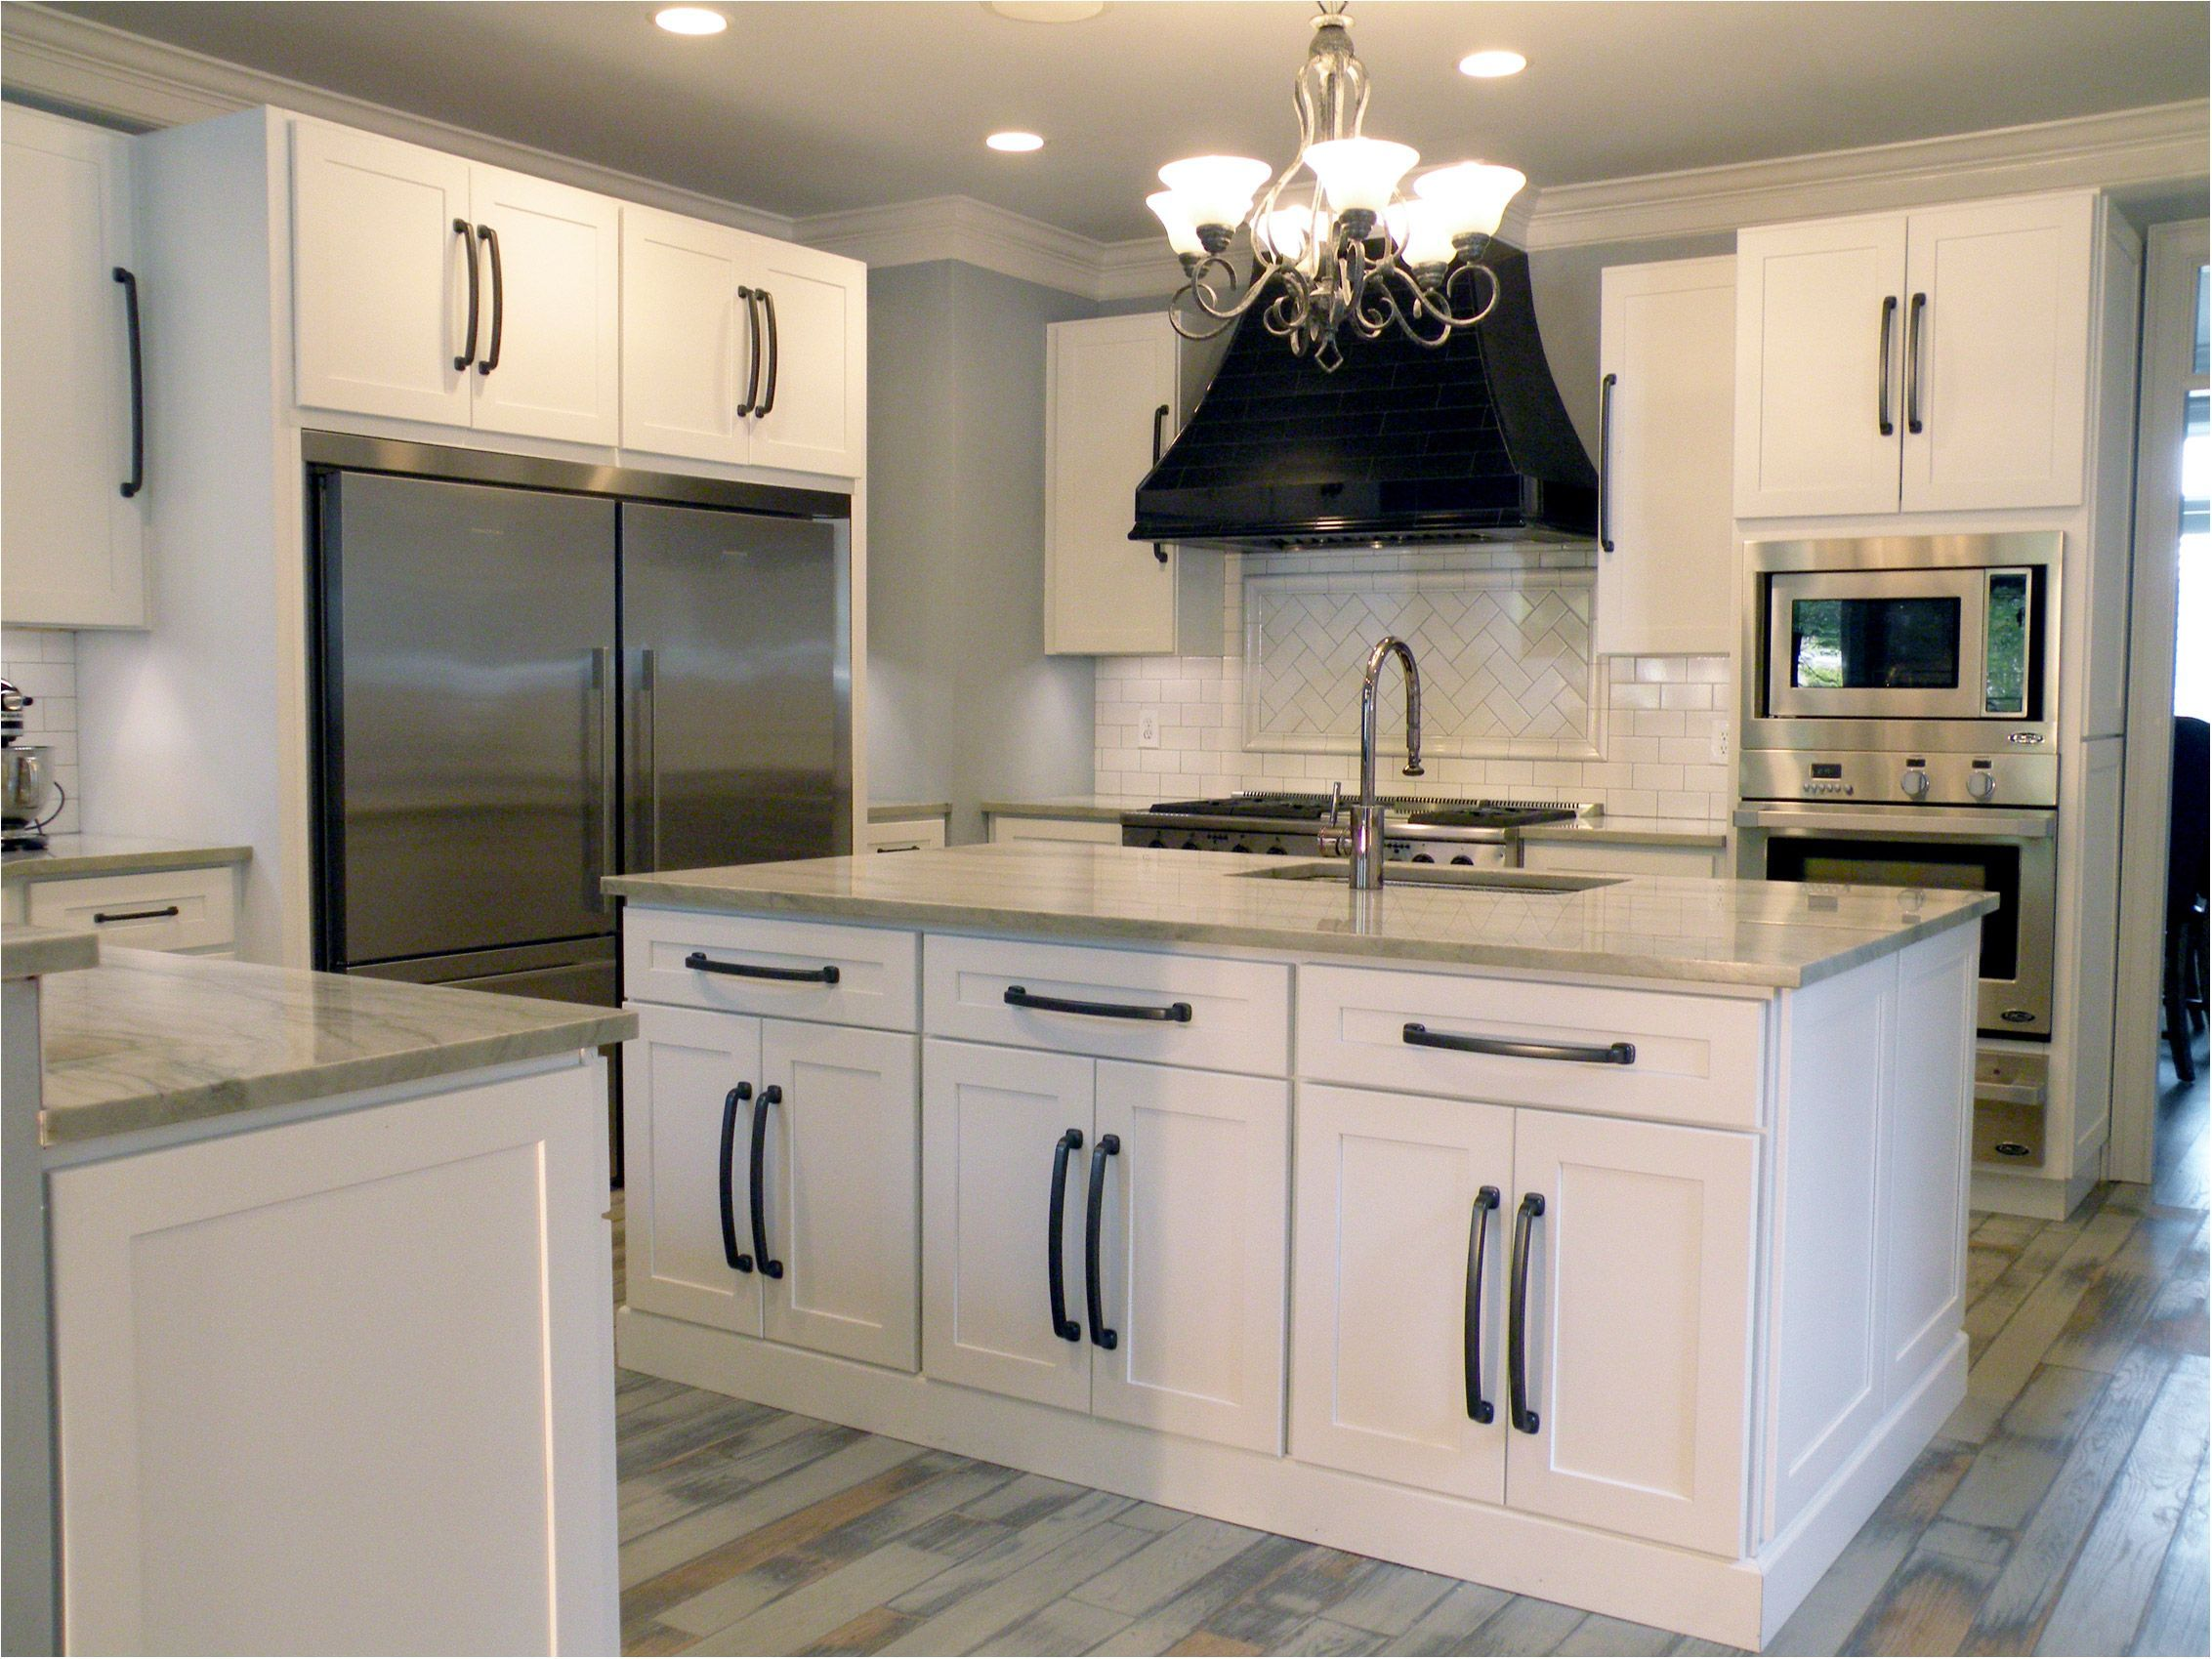 Astounding Stylish White Cabinets With Black Hardware White Shaker Heritage Classic White Shaker Kitchen Cabinets White Shaker Kitchen Kitchen Cabinet Handles